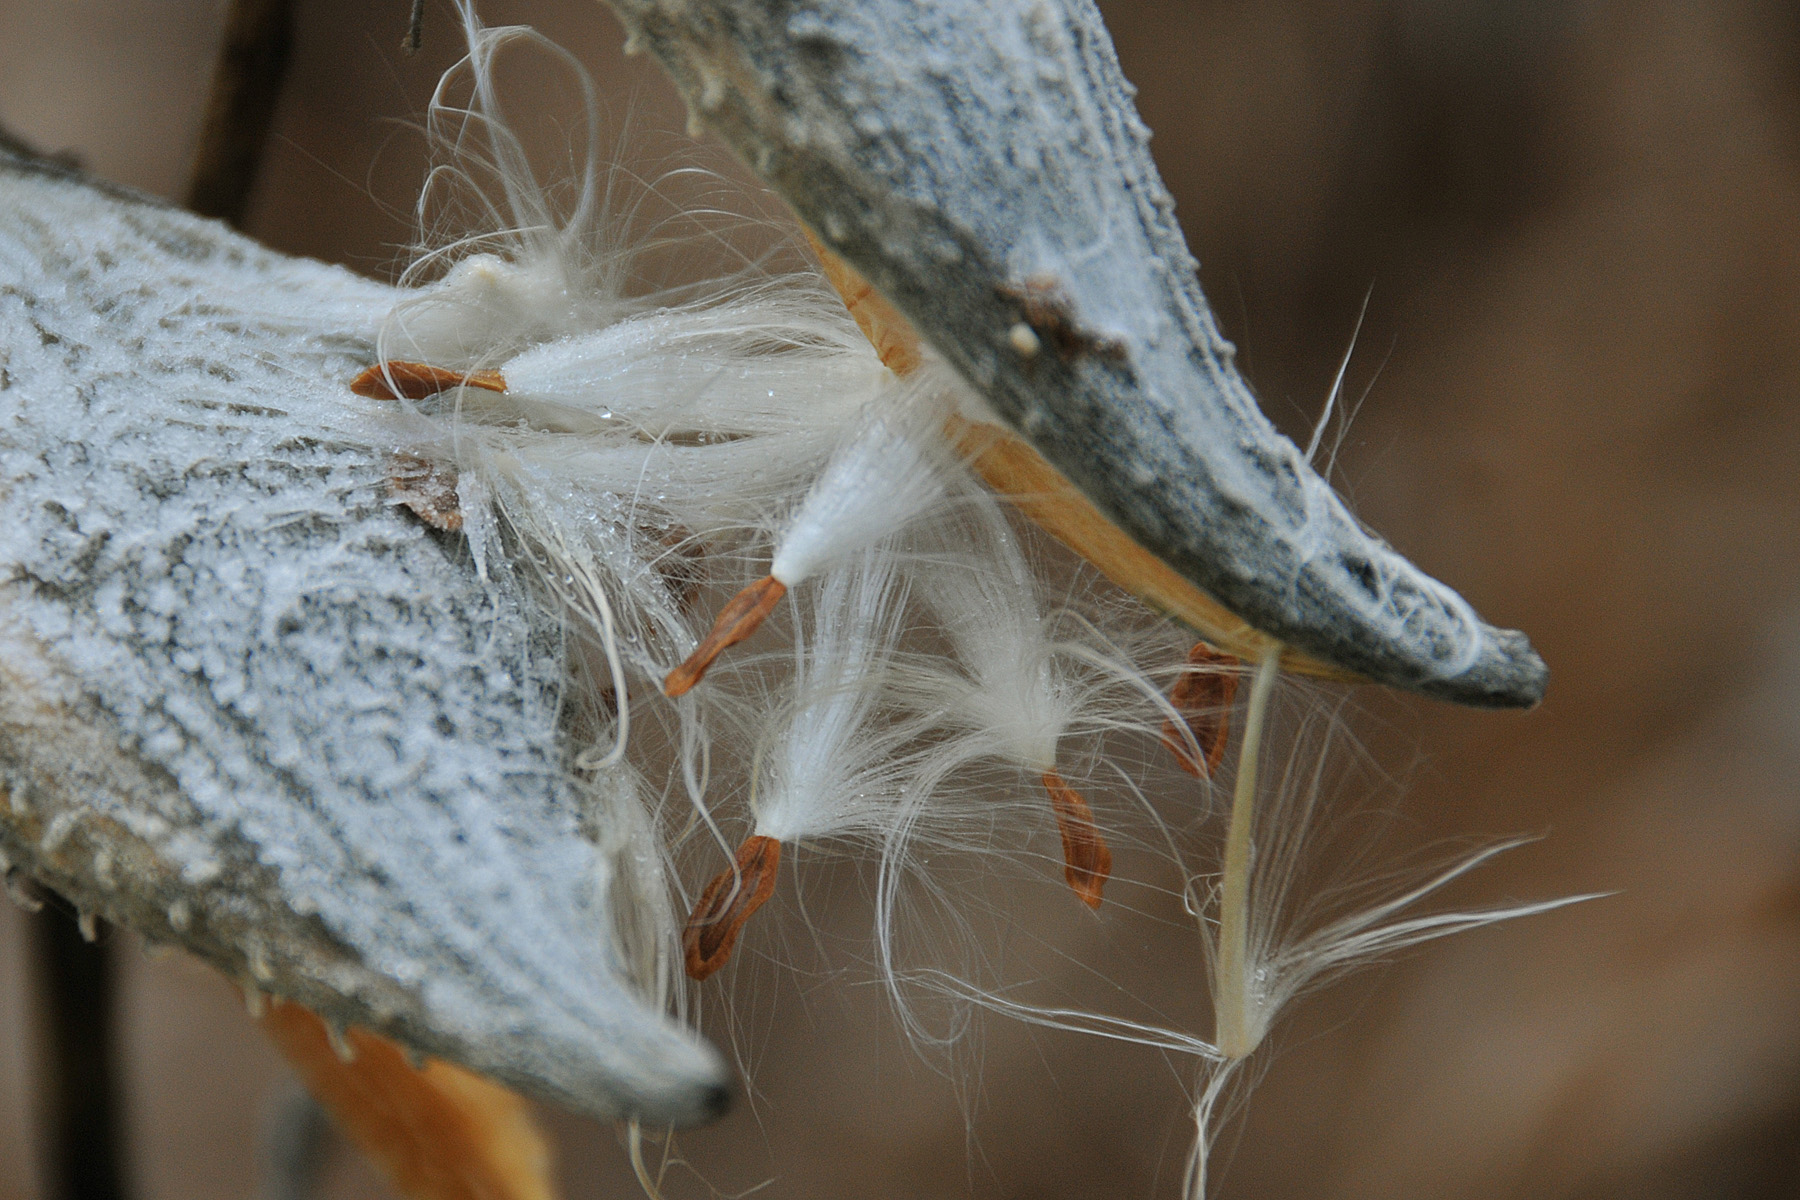 The Dance of the Milkweed Seeds